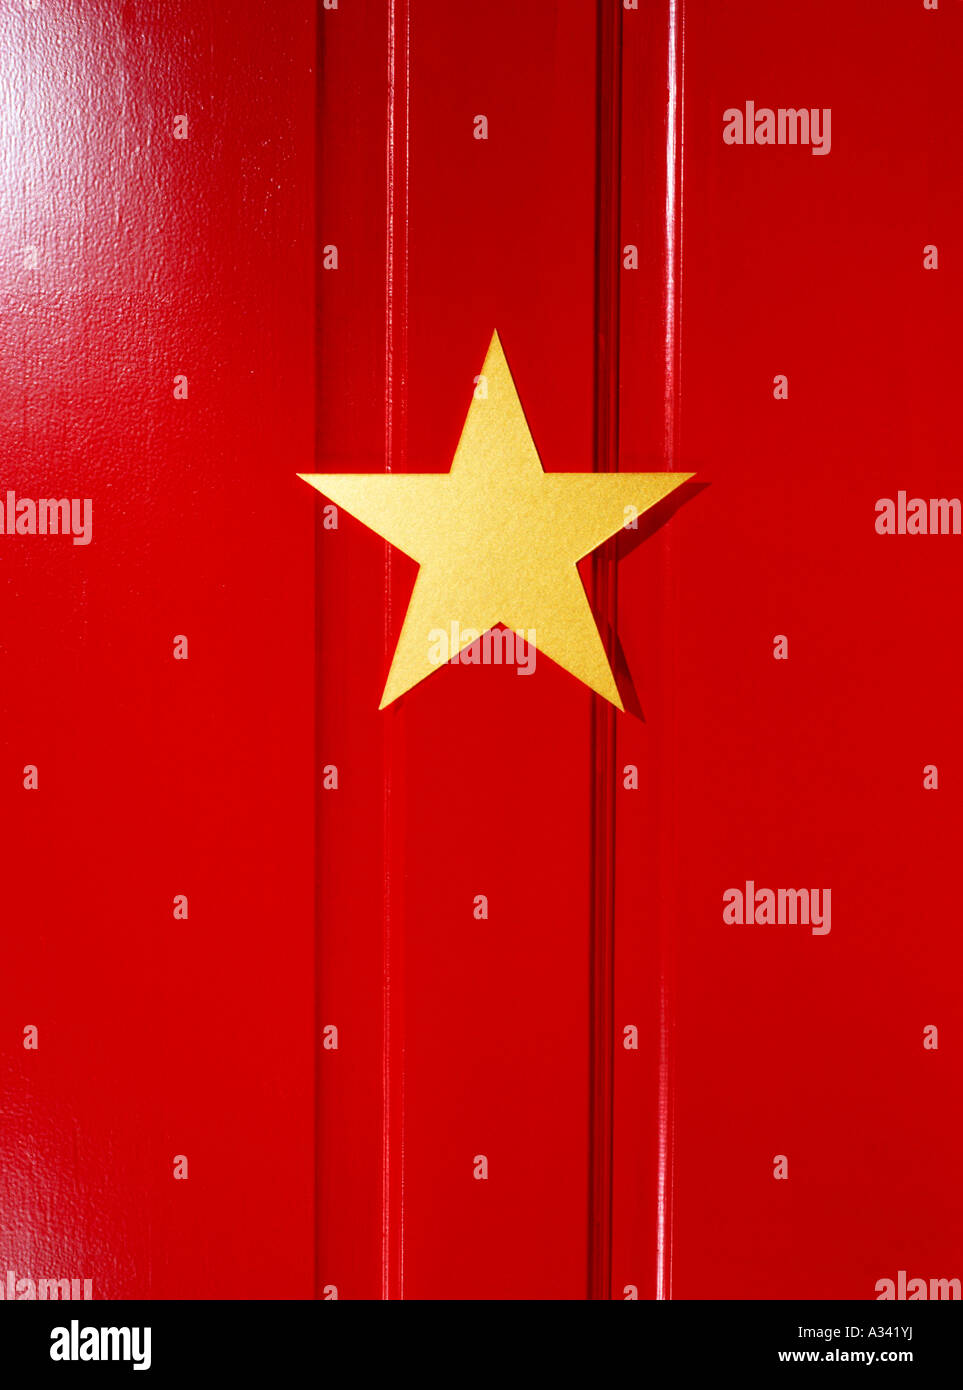 Star on dressing room door Stock Photo: 10663061 - Alamy